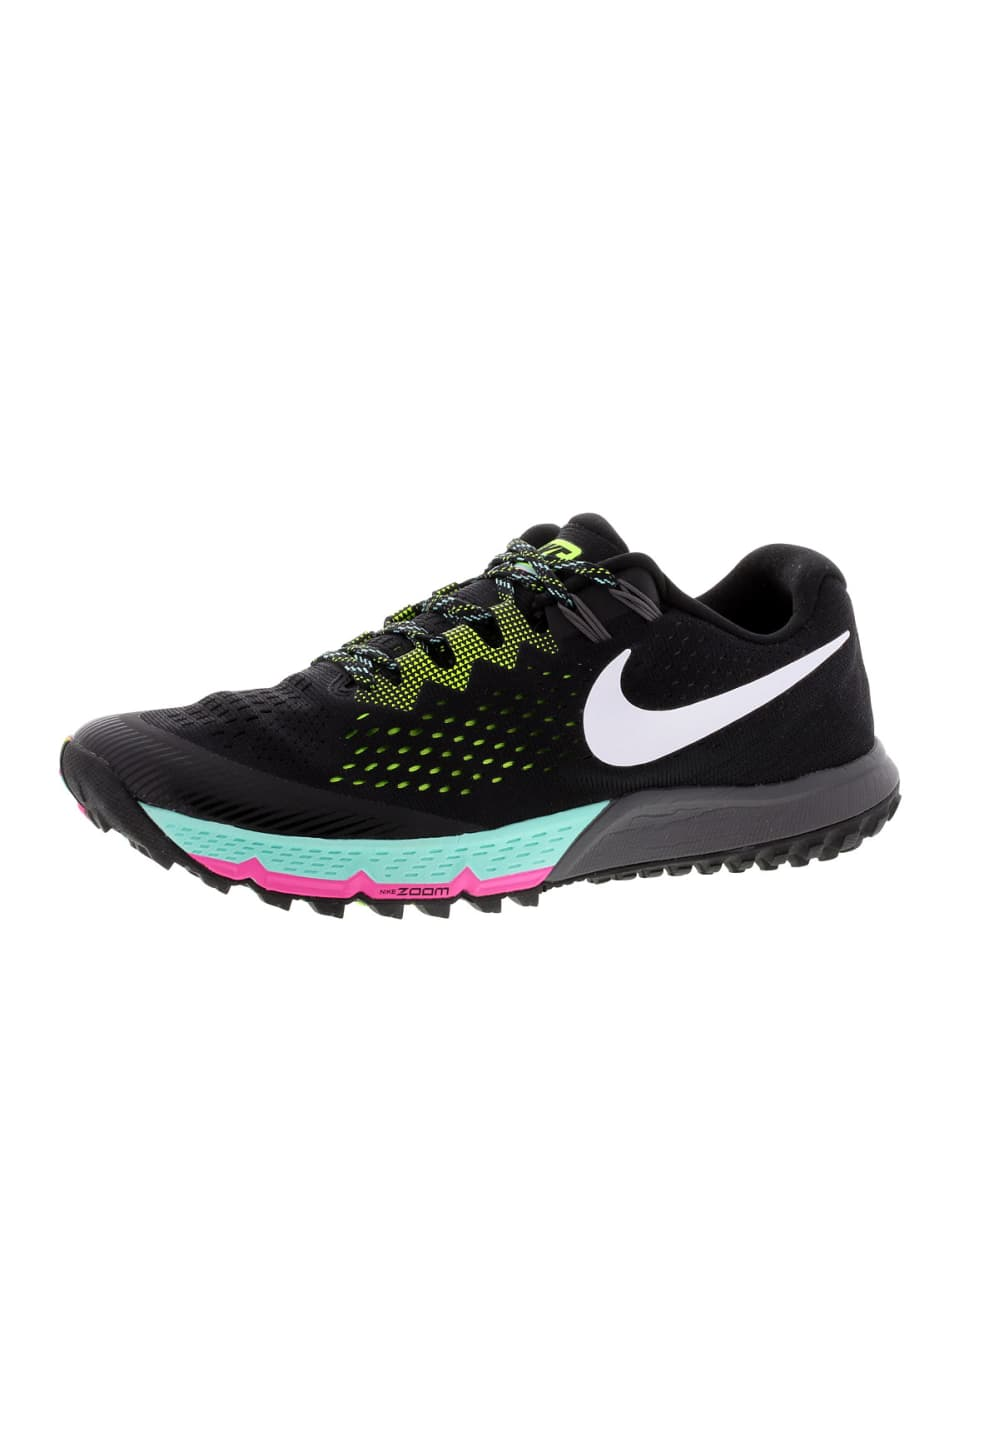 new product 12dbe af220 Nike Air Zoom Terra Kiger 4 - Running shoes for Men - Black